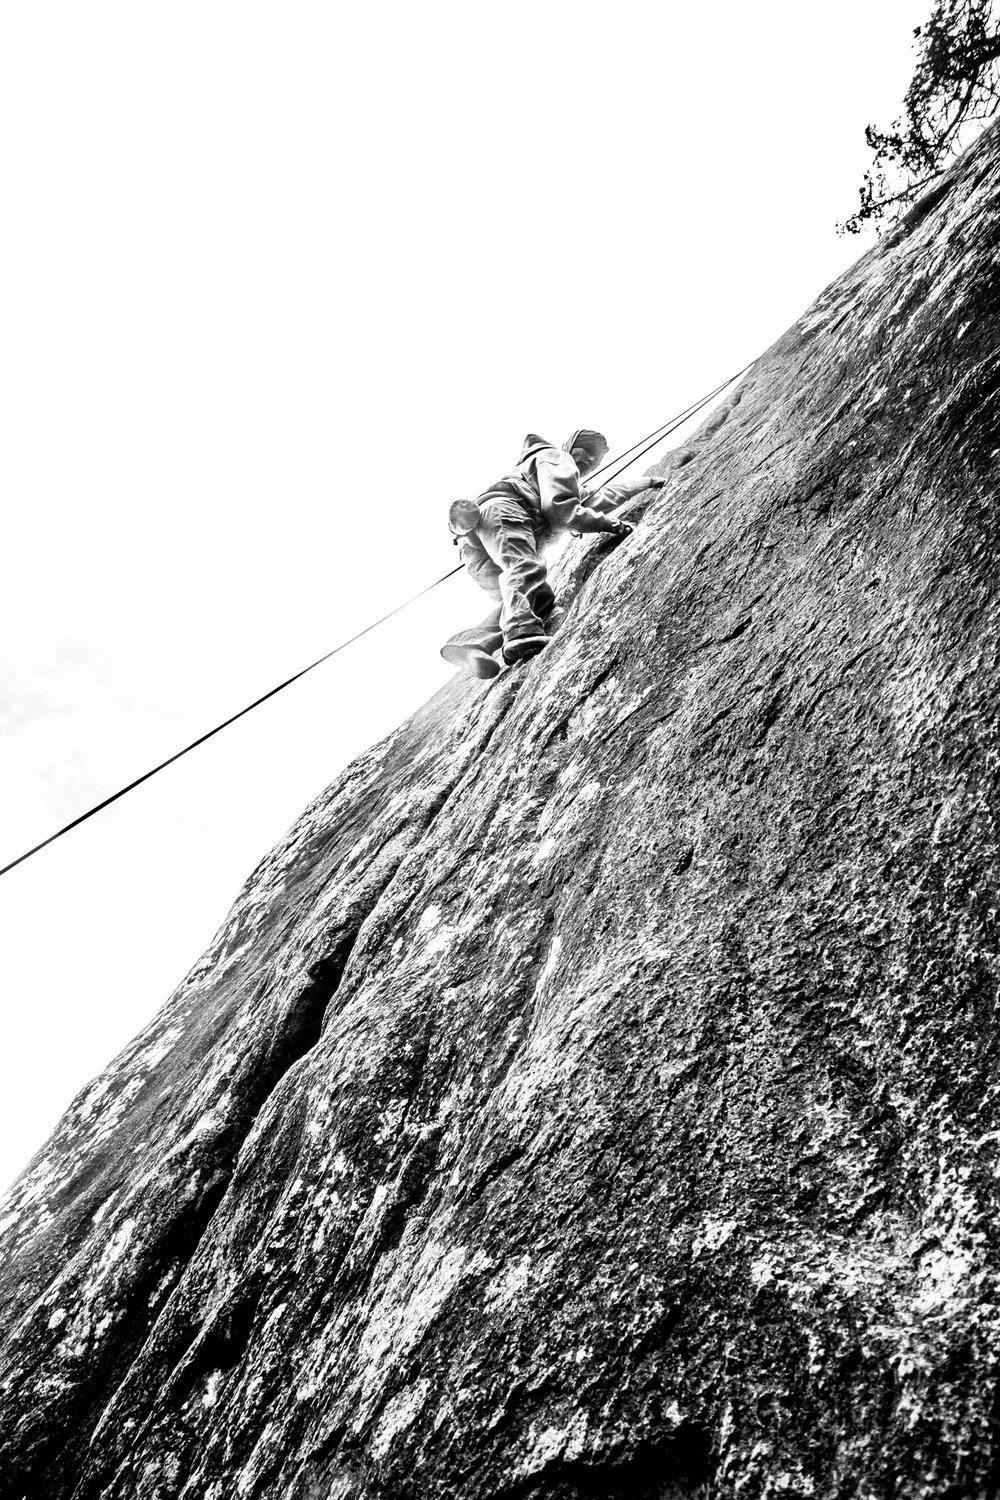 4-22-17 Rock Climbing black & white-11.jpg